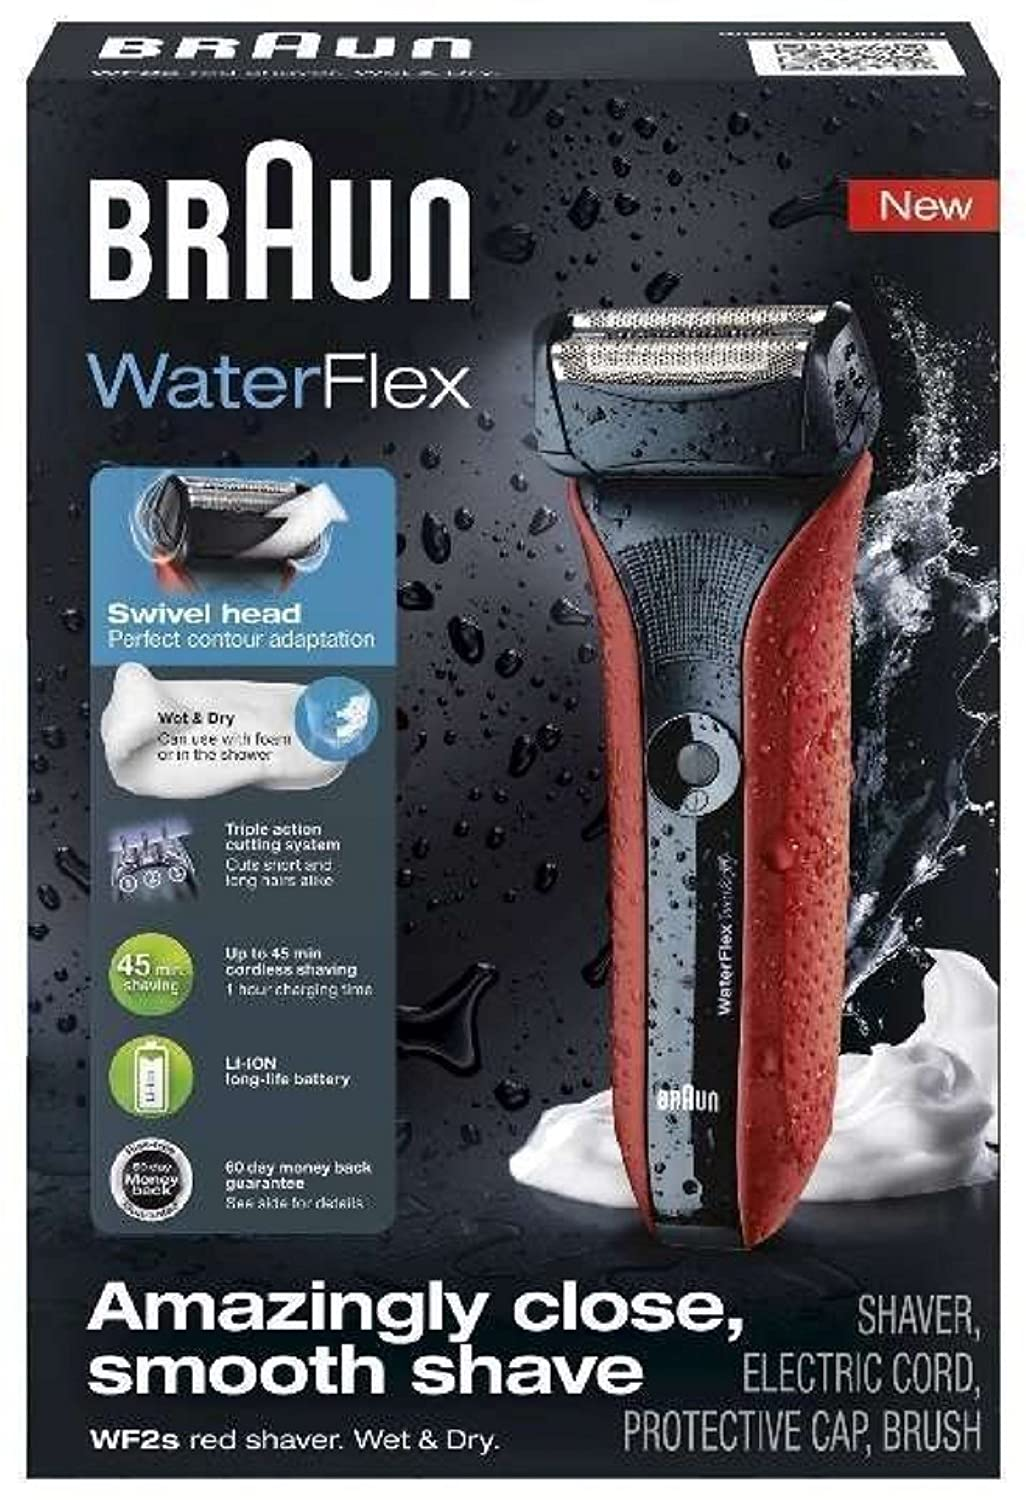 Braun 00000 WaterFlex WF2s Electric Shaver, 5, Red